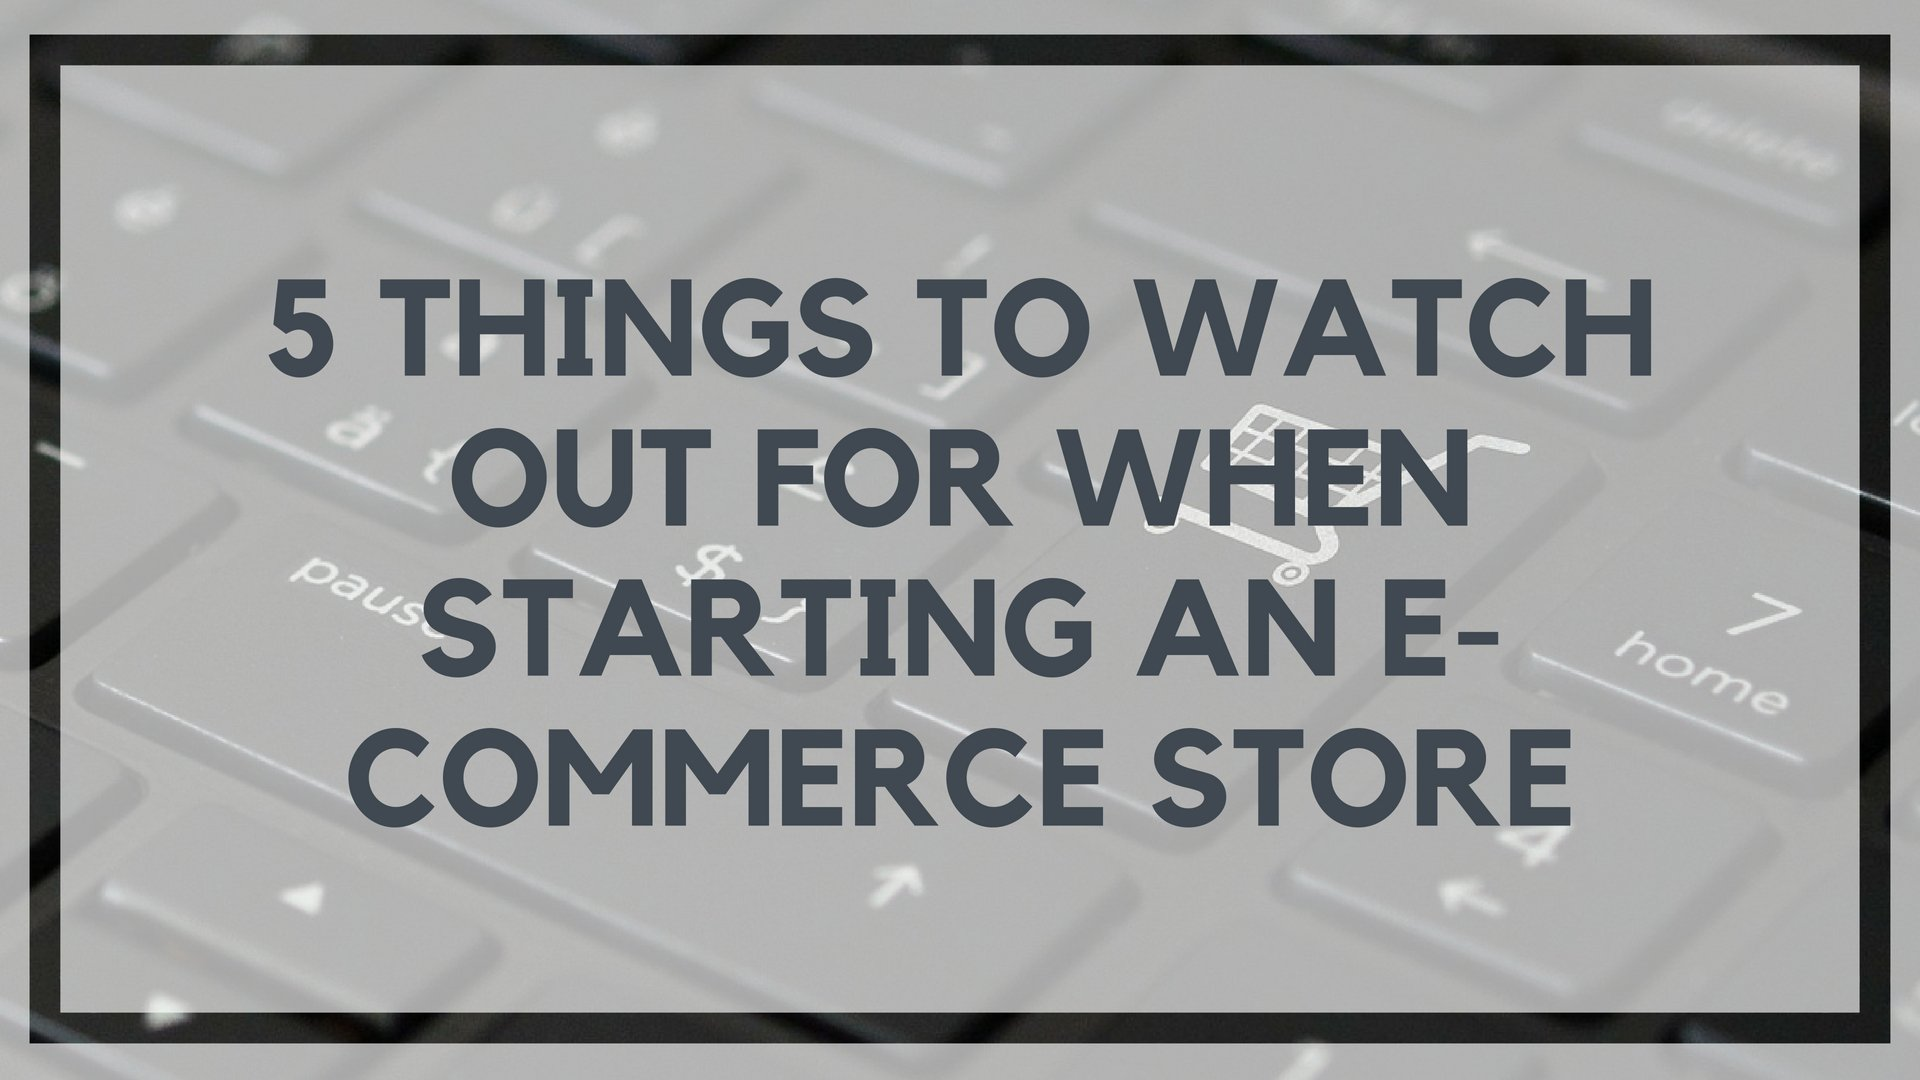 5 Things to Watch Out for When Starting an E-Commerce Store